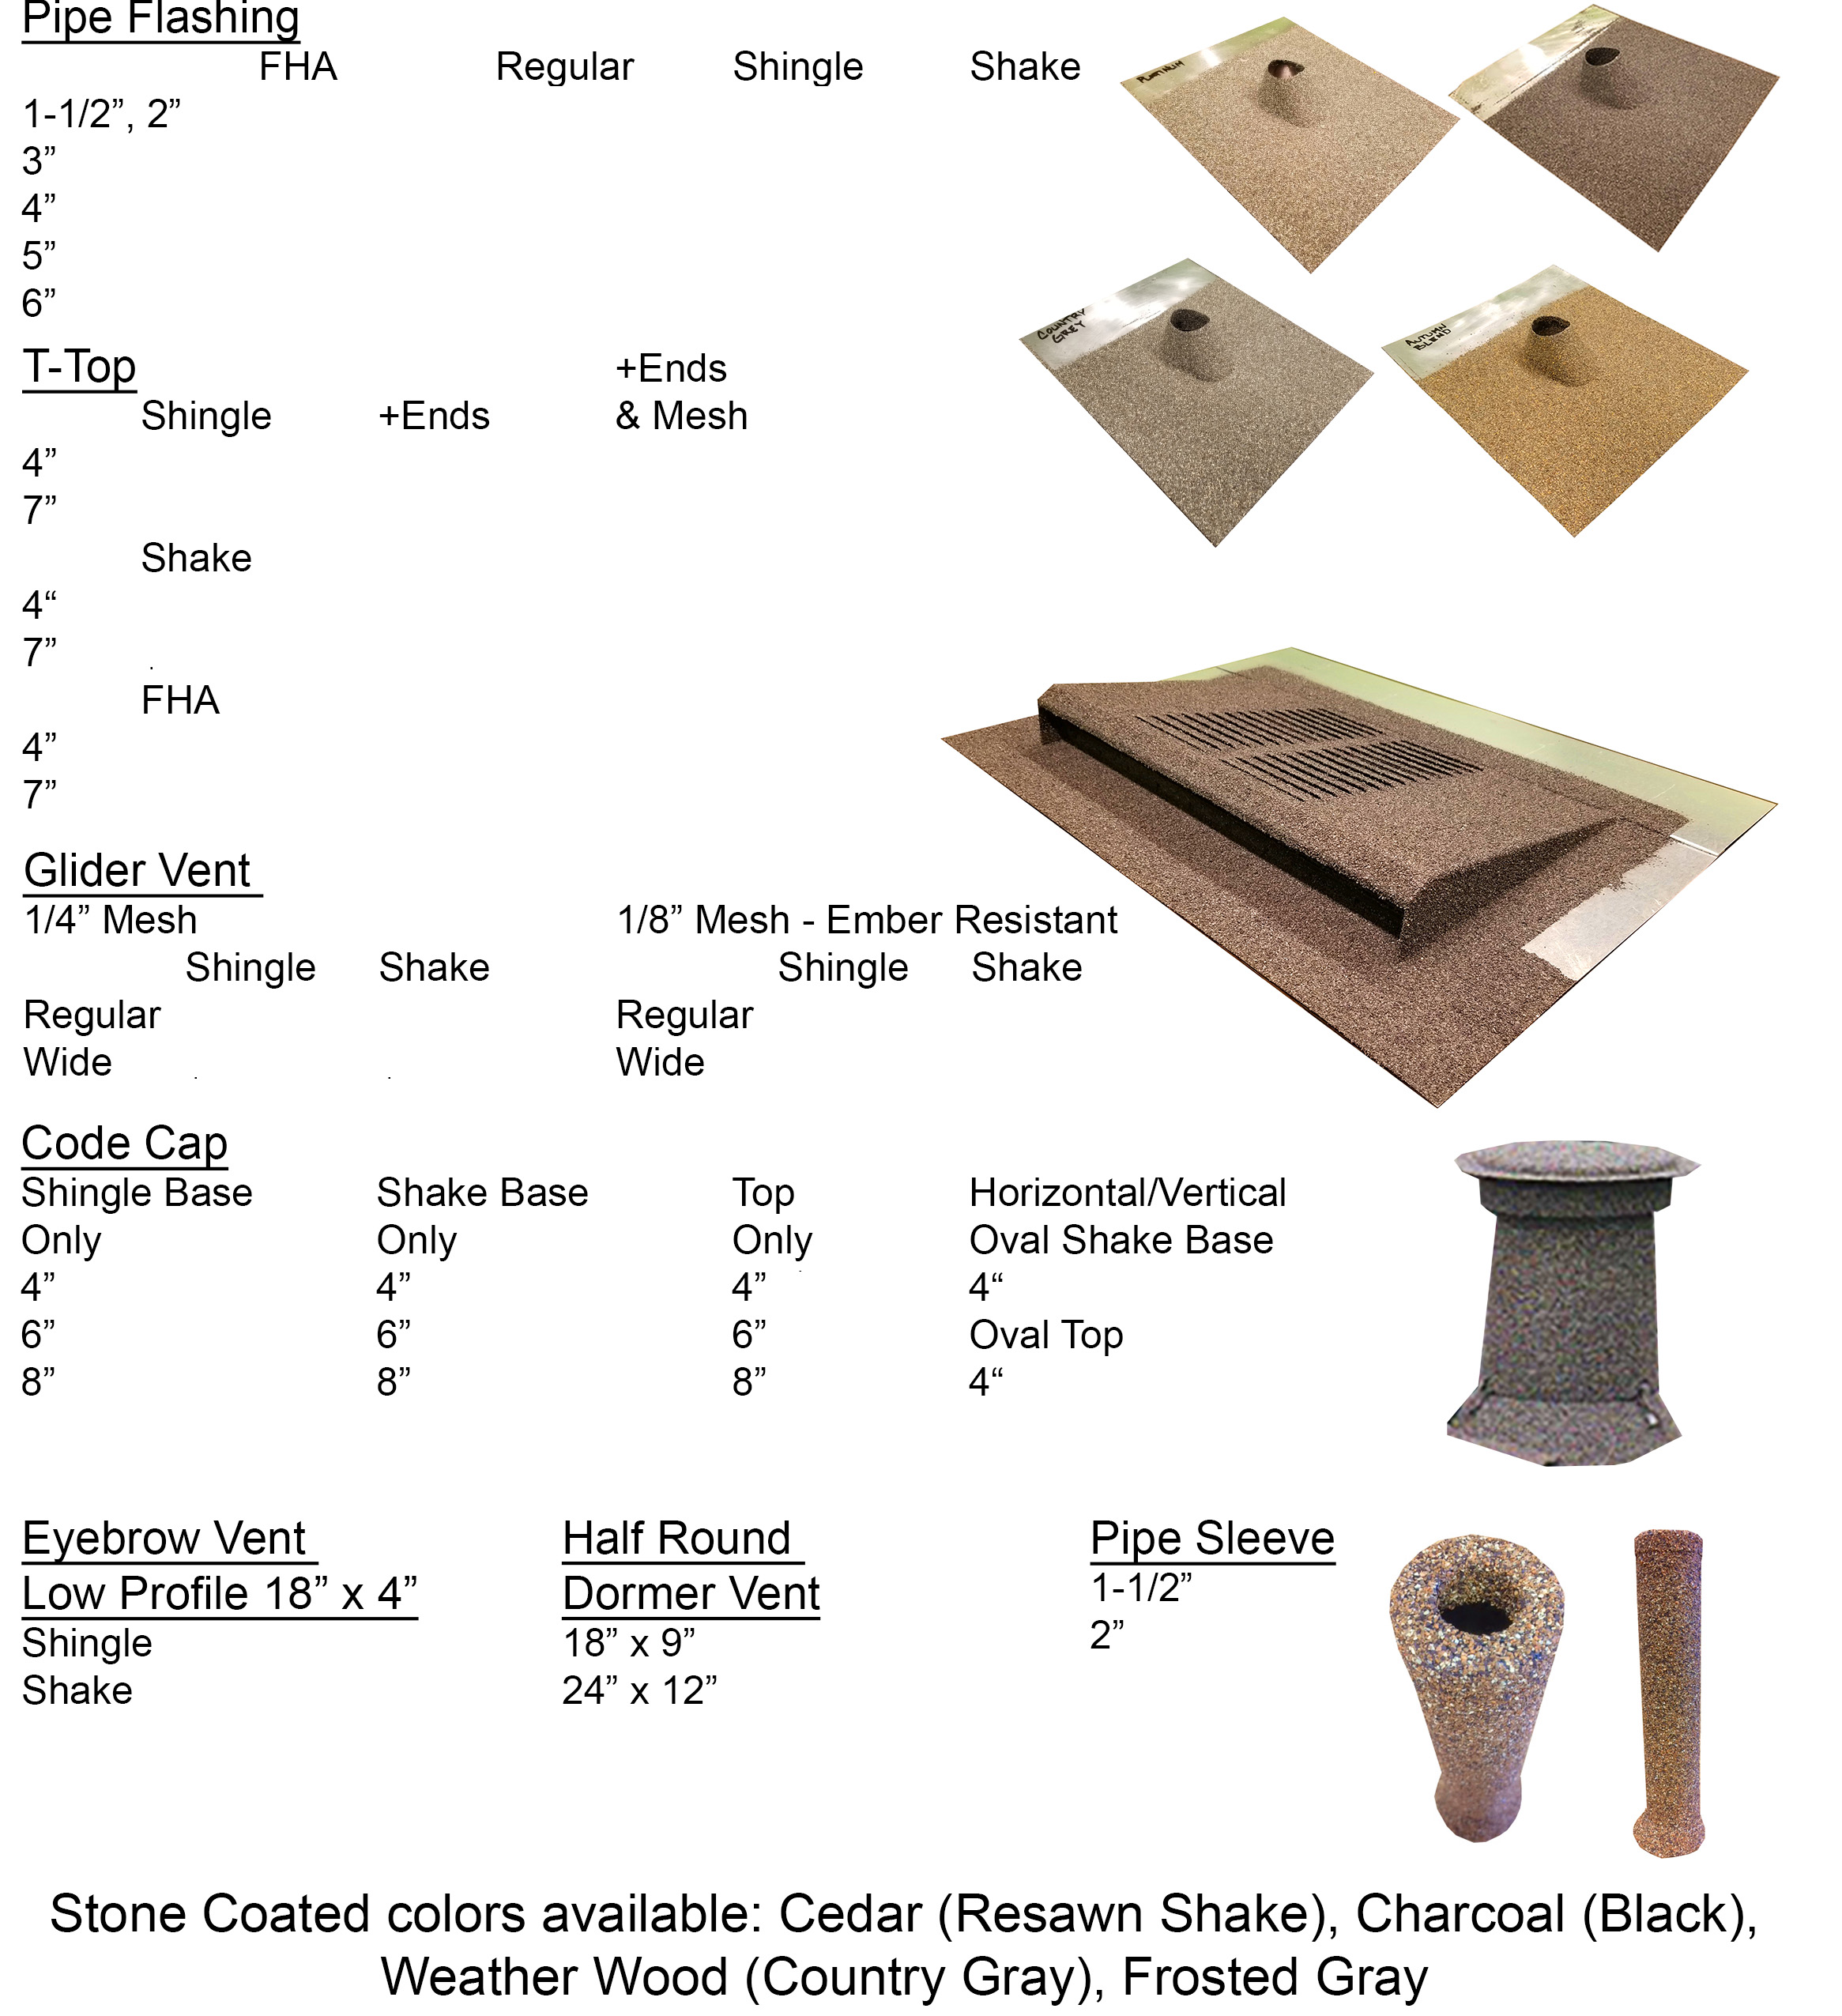 stone-coated-site.jpg